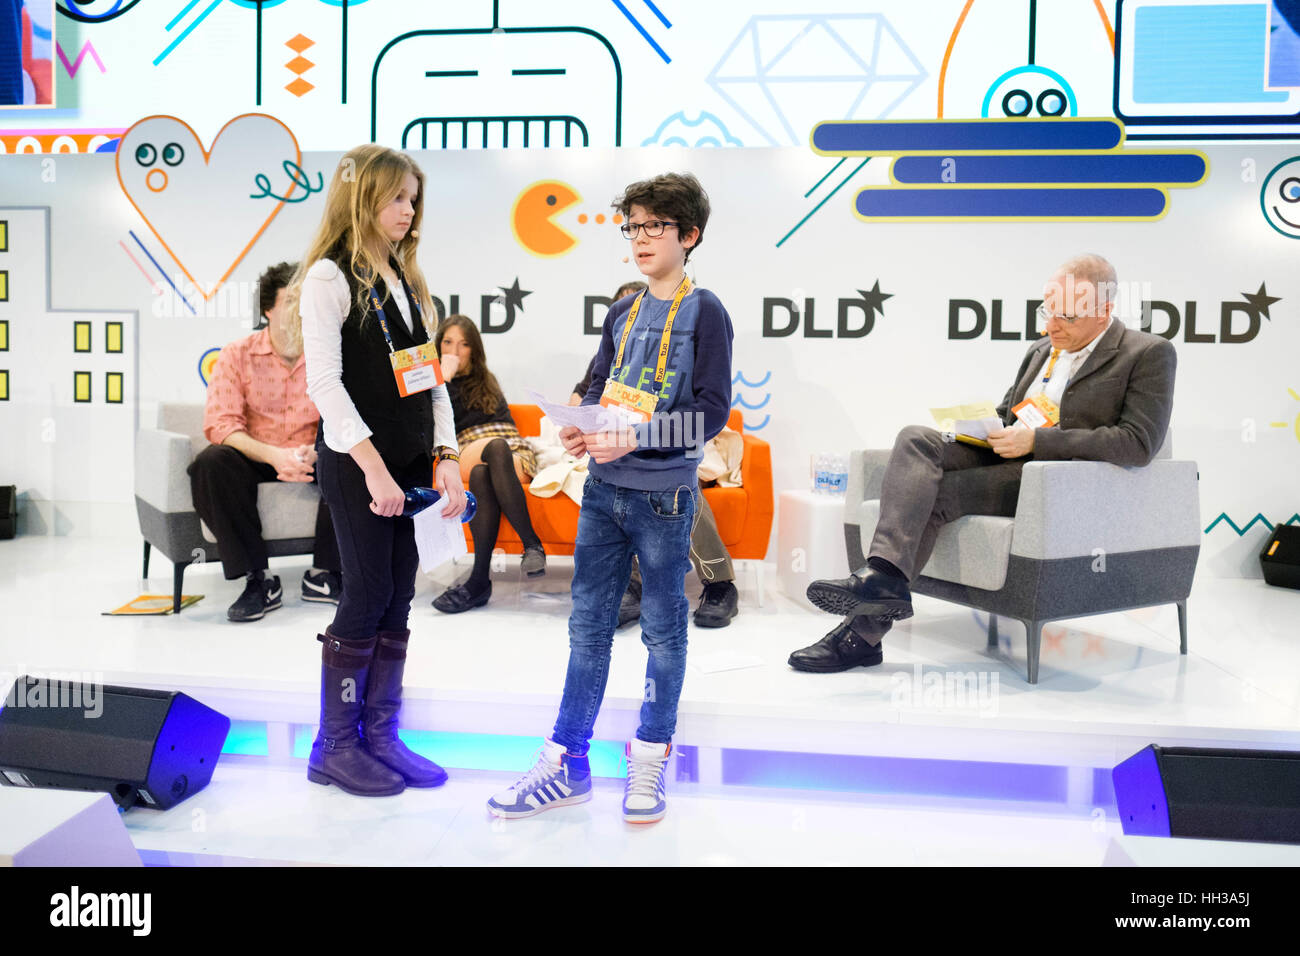 Munich, Germany. 16th January 2017. JAMIAN JULIANO-VILLANI and BILLY GRANT during he DLD17 (Digital-Life-Design) Stock Photo